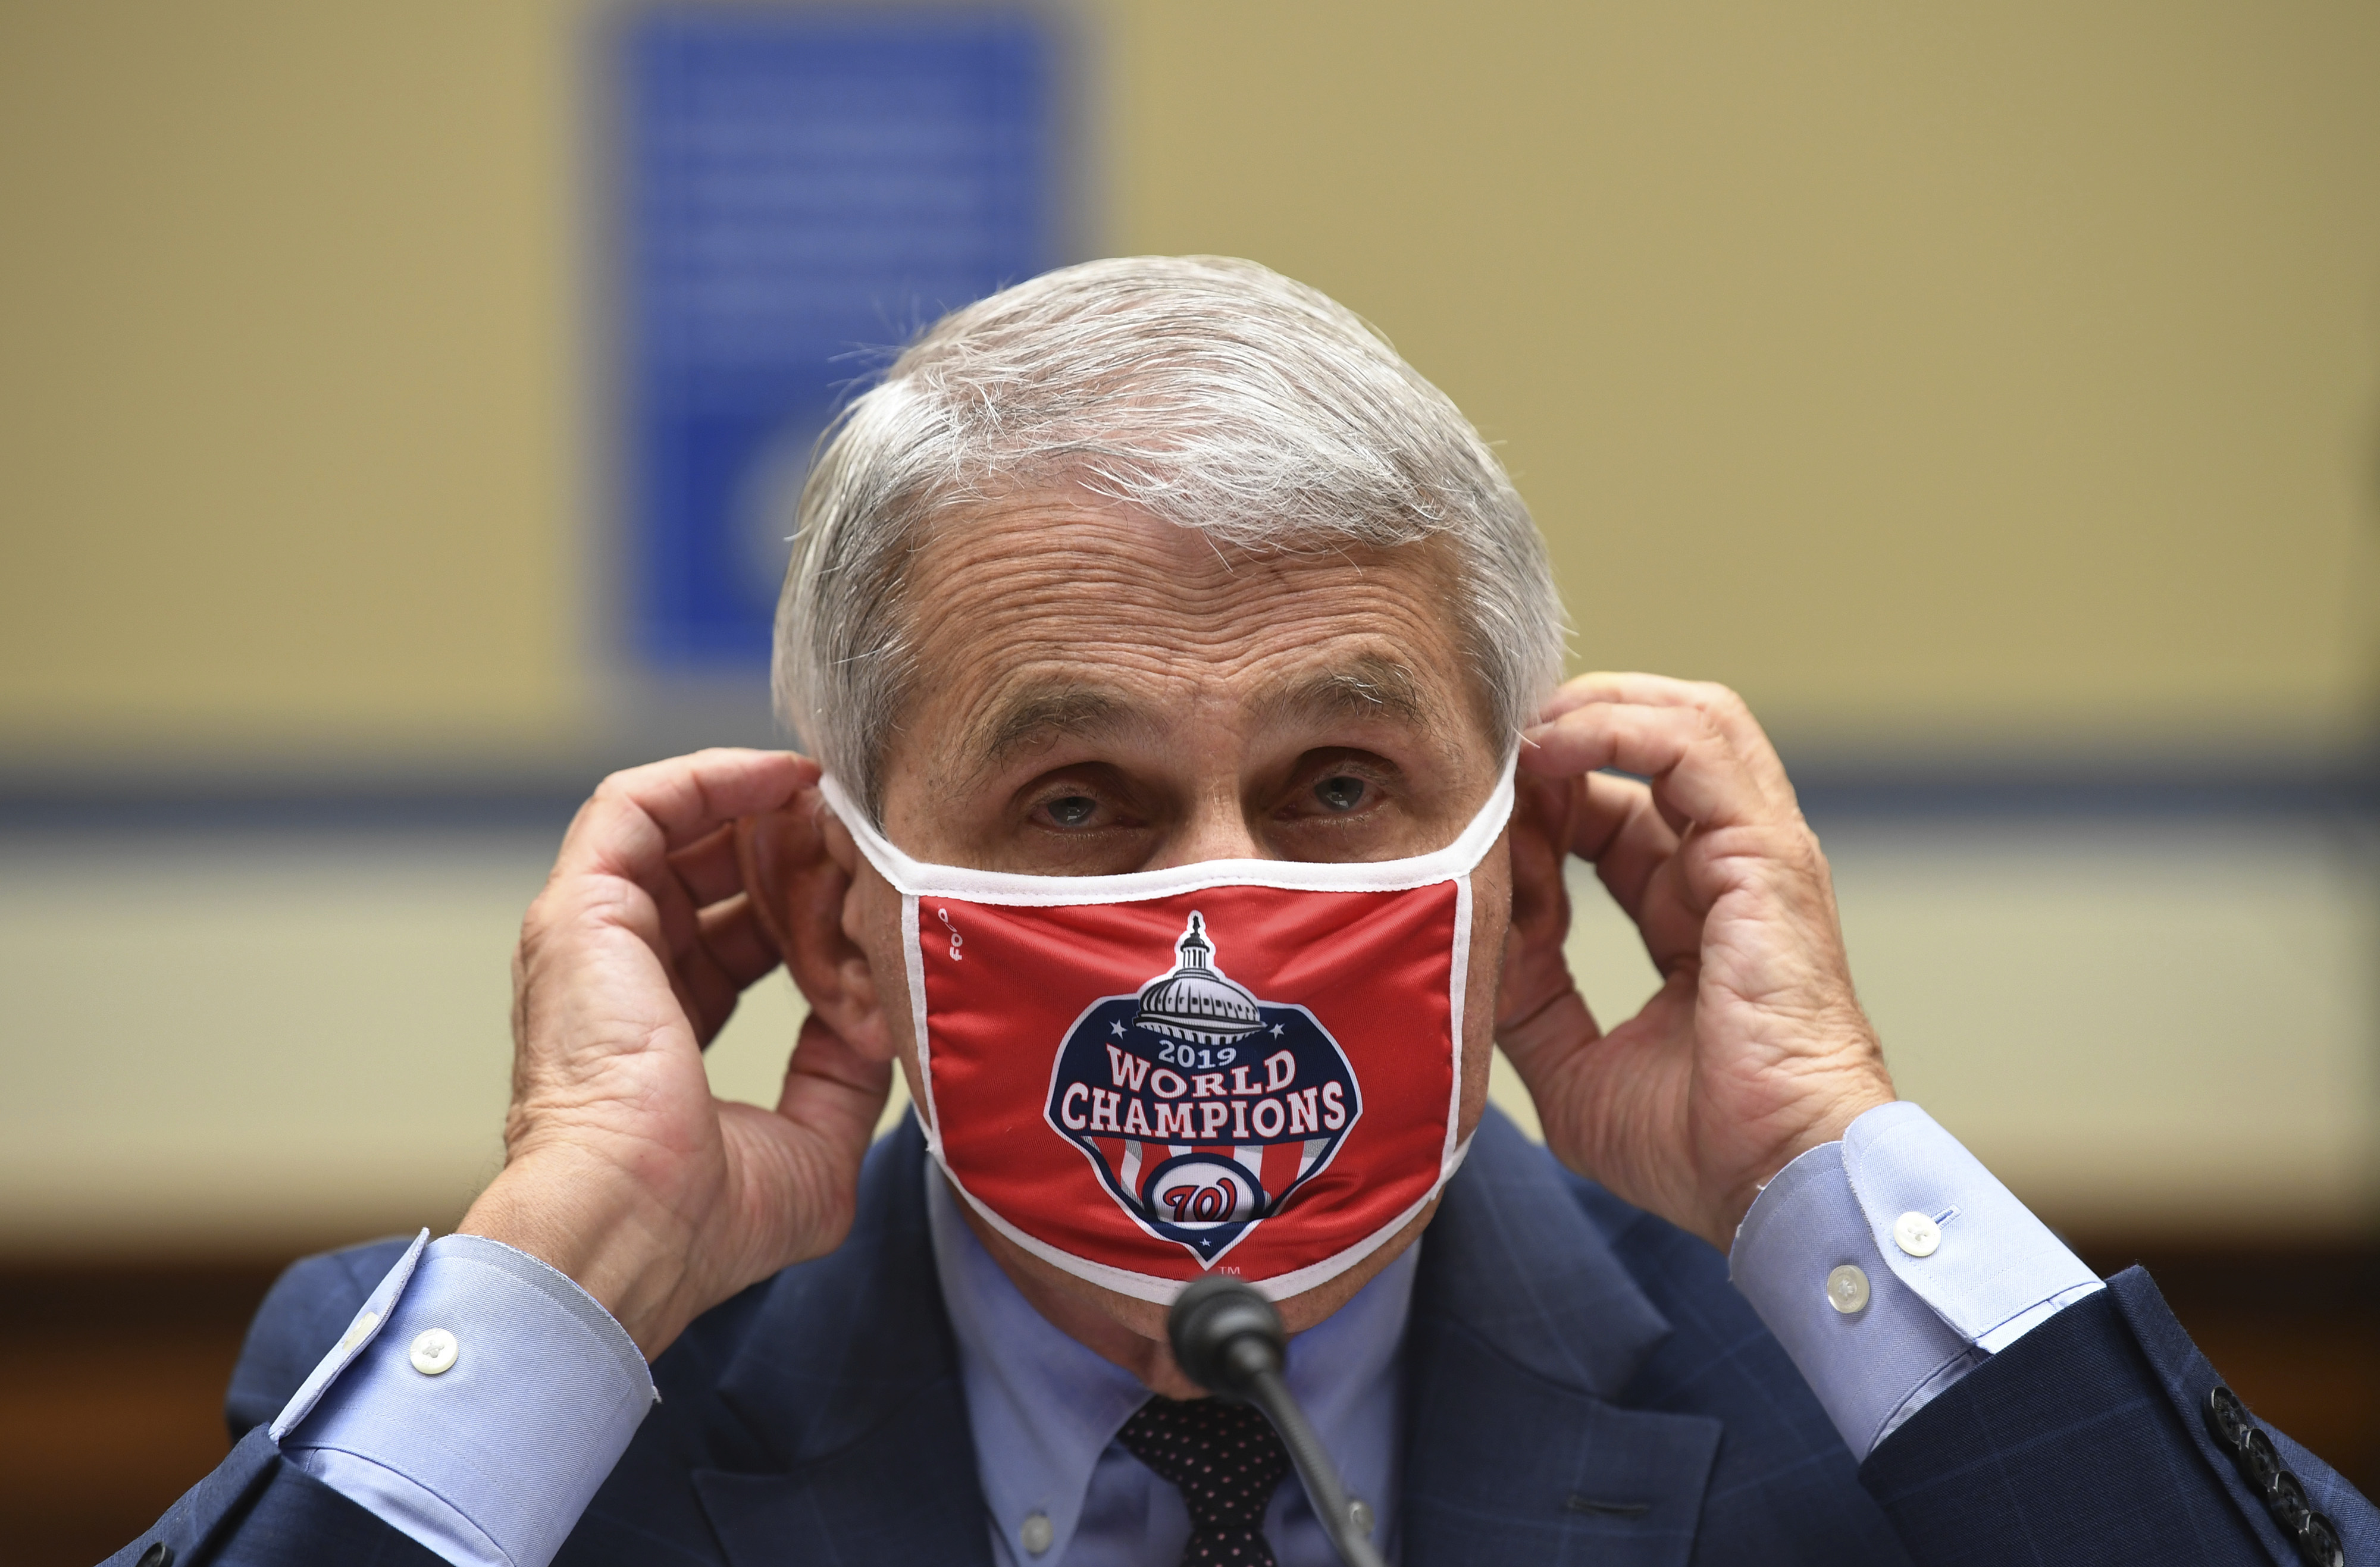 Dr. Anthony Fauci, director of the National Institute for Allergy and Infectious Diseases, adjusts his face mask during a House Subcommittee on the Coronavirus crisis hearing, Friday, July 31, 2020 on nCapitol Hill in Washington. Photo: AP